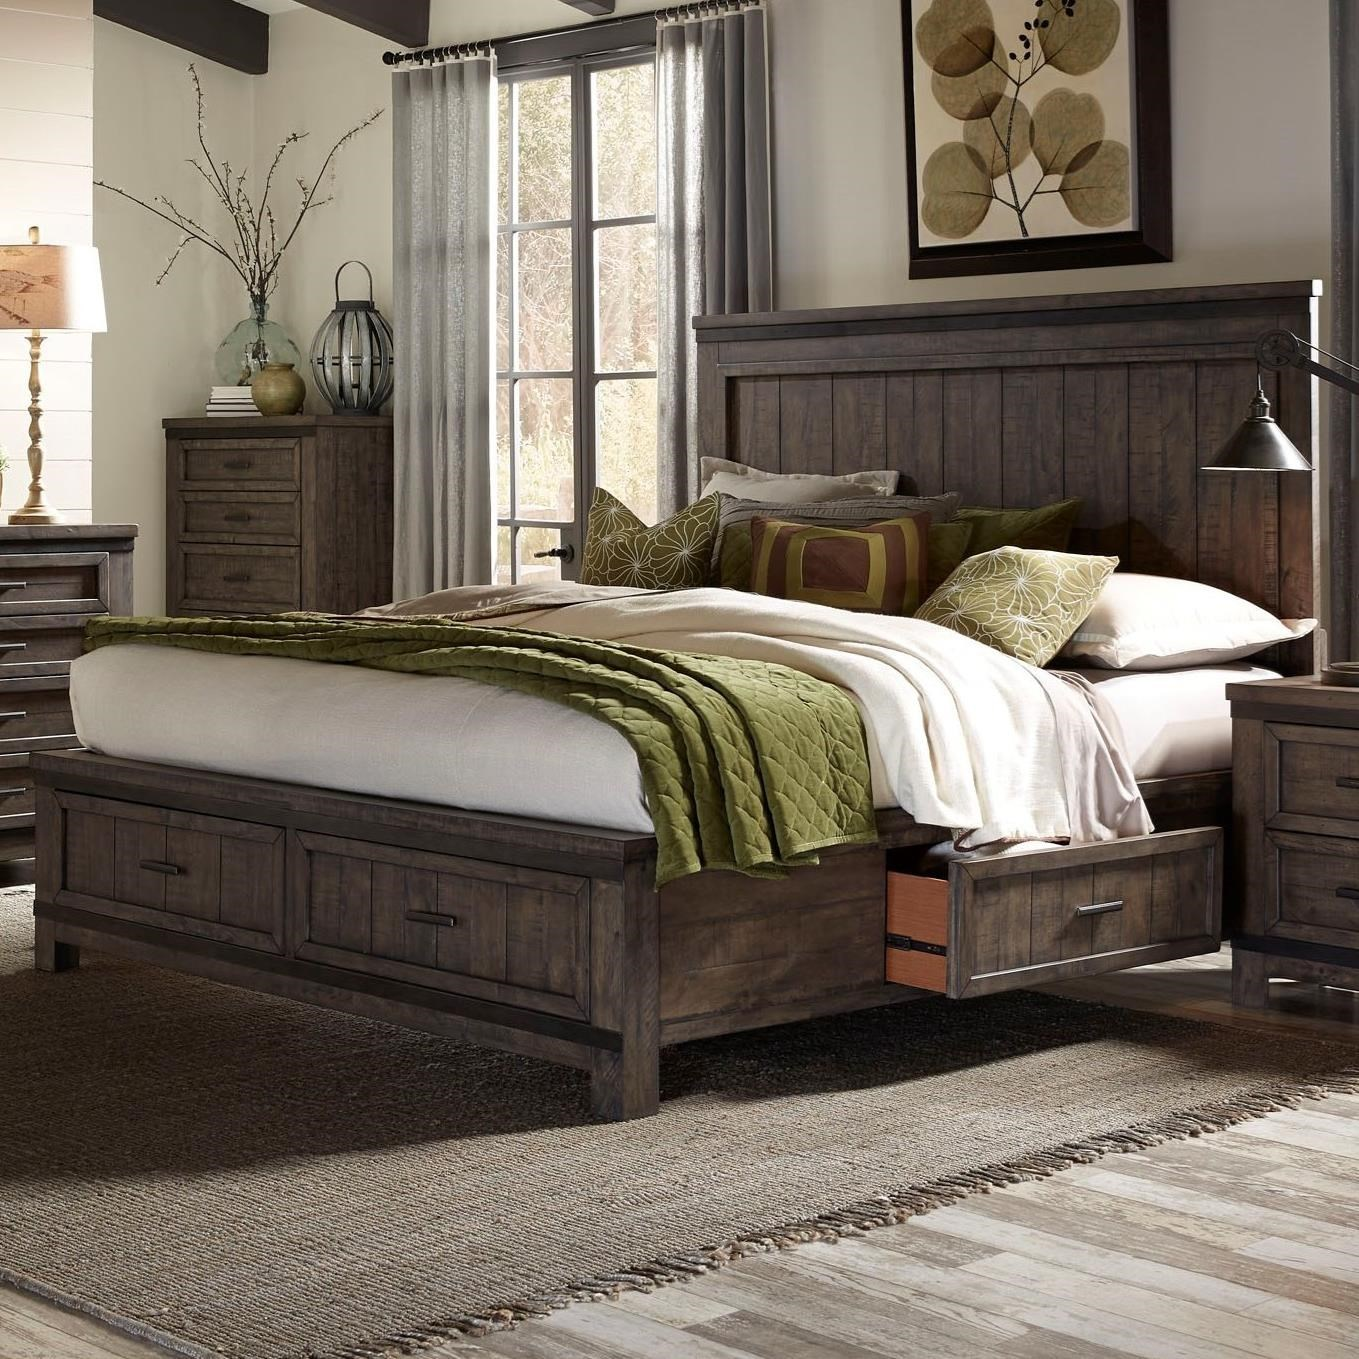 King Two Sided Storage Bed with Dovetail Drawers